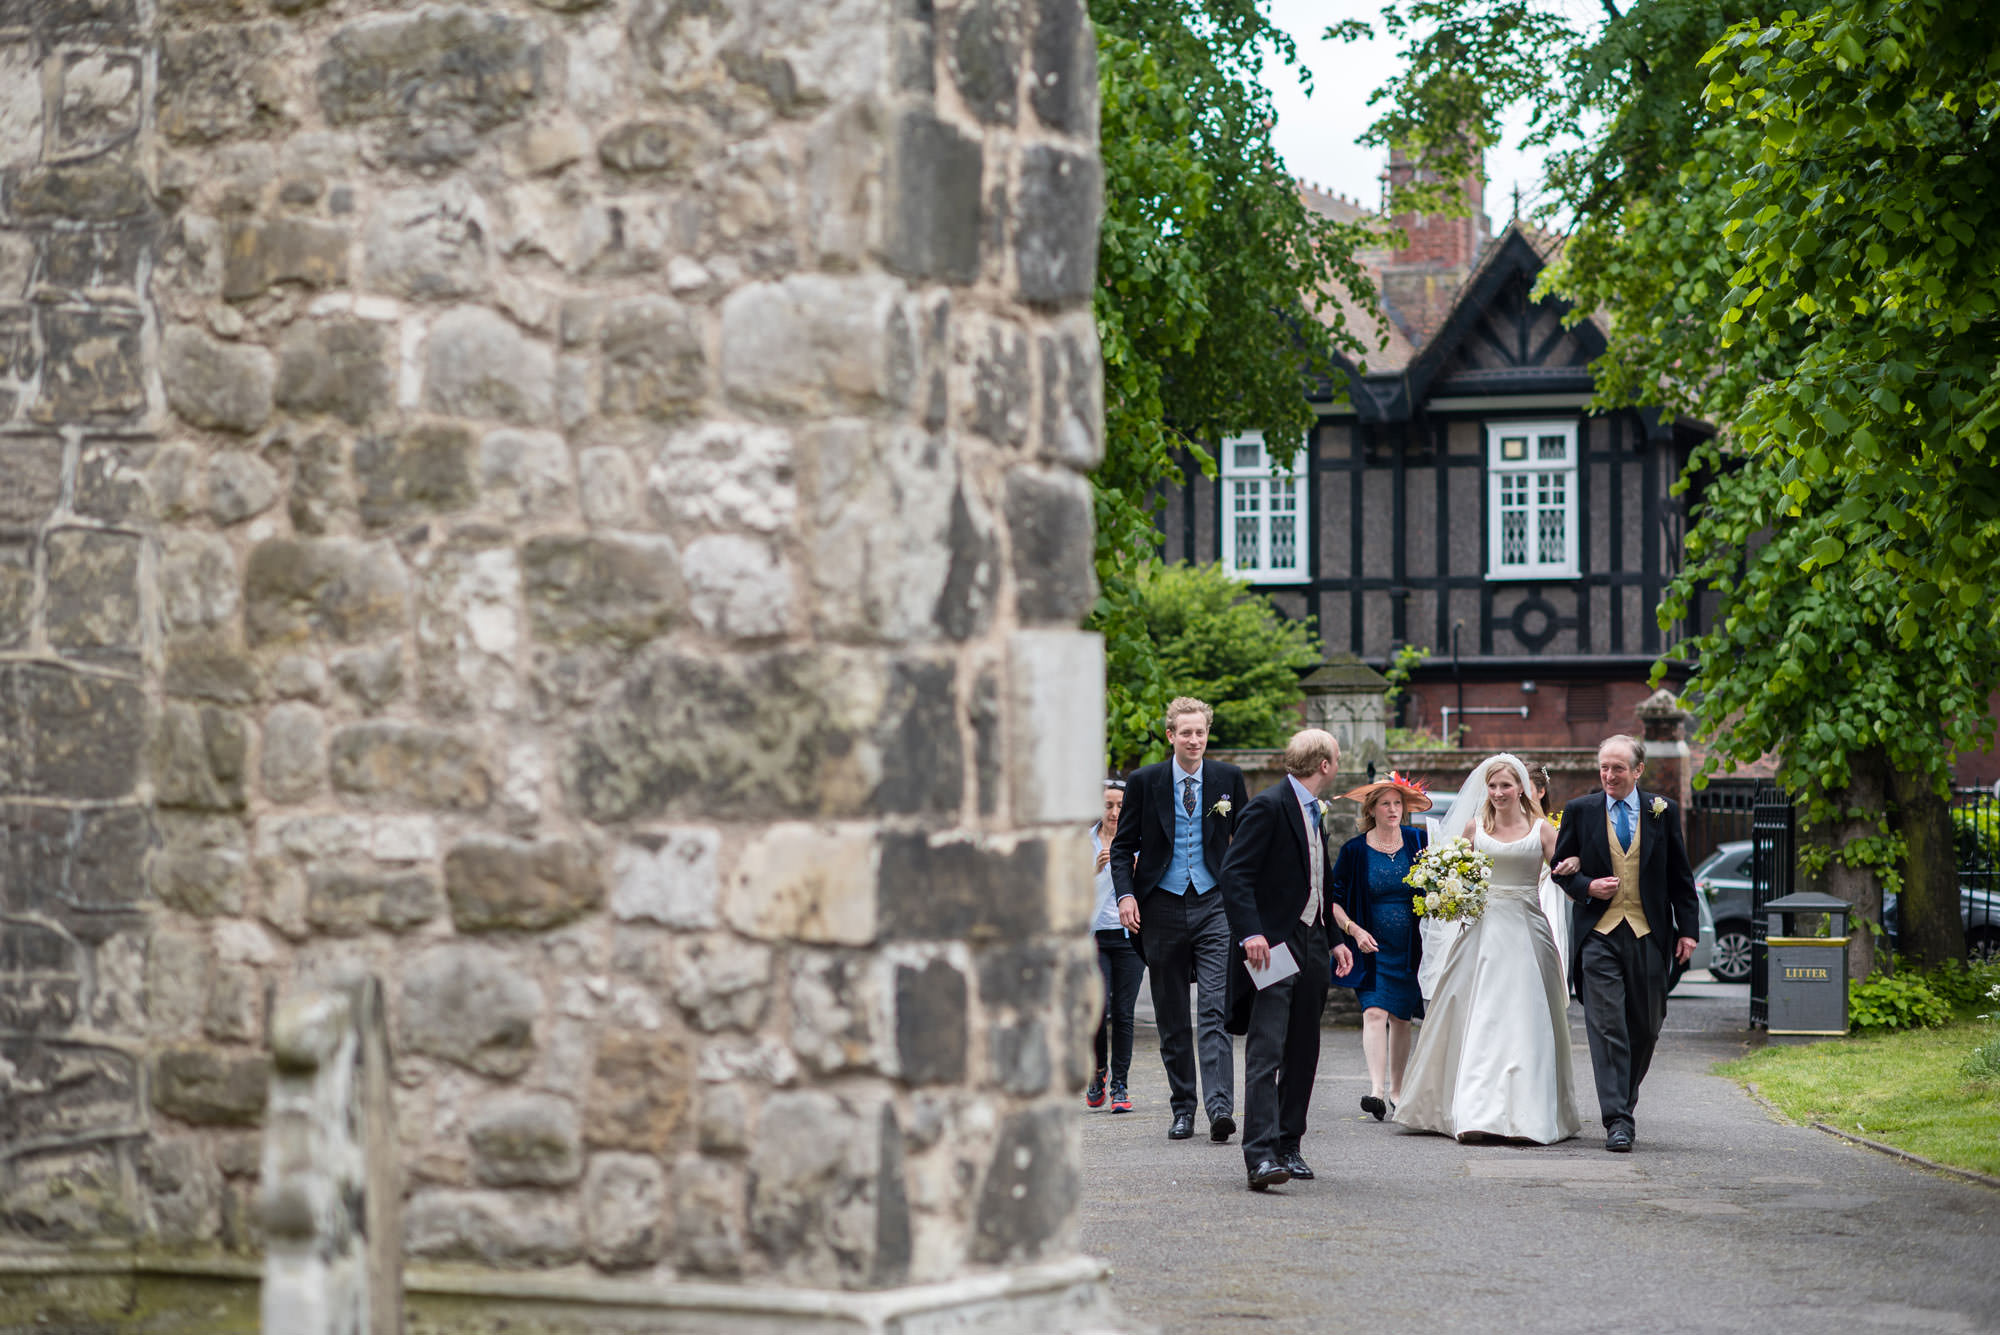 The bride and her party arrive for the Fulham Palace wedding